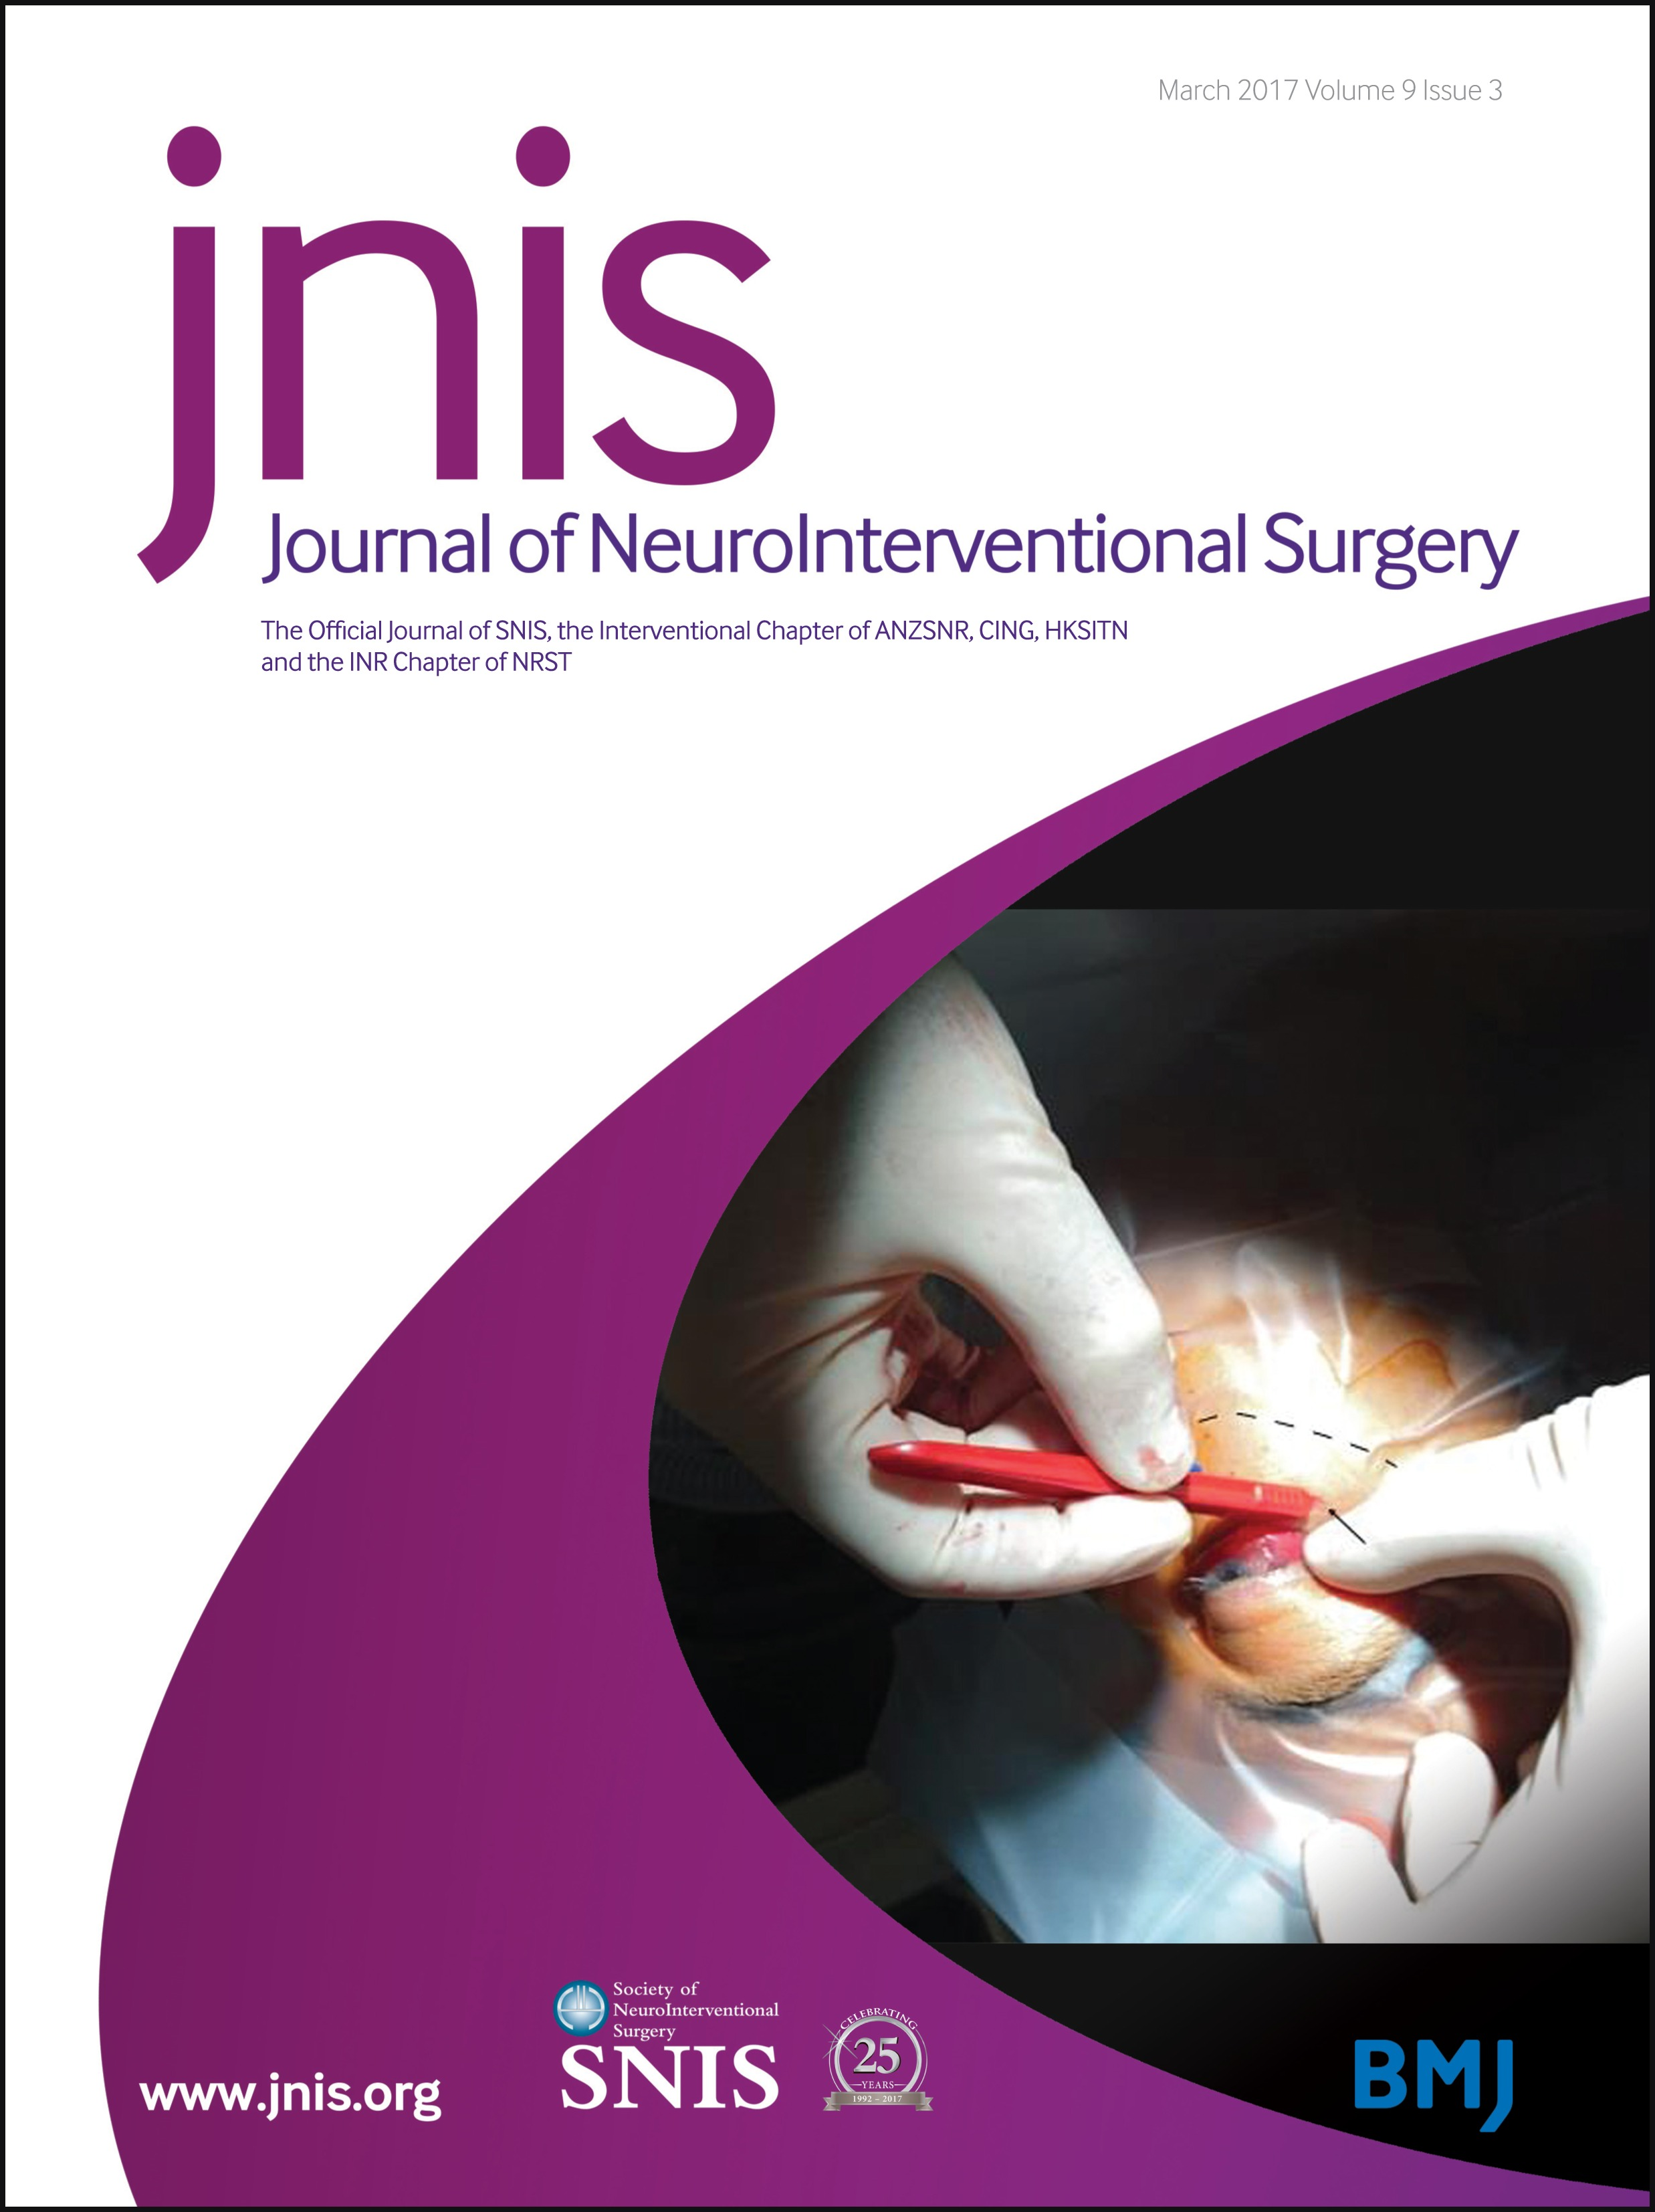 Novel approaches to access and treatment of cavernous sinus